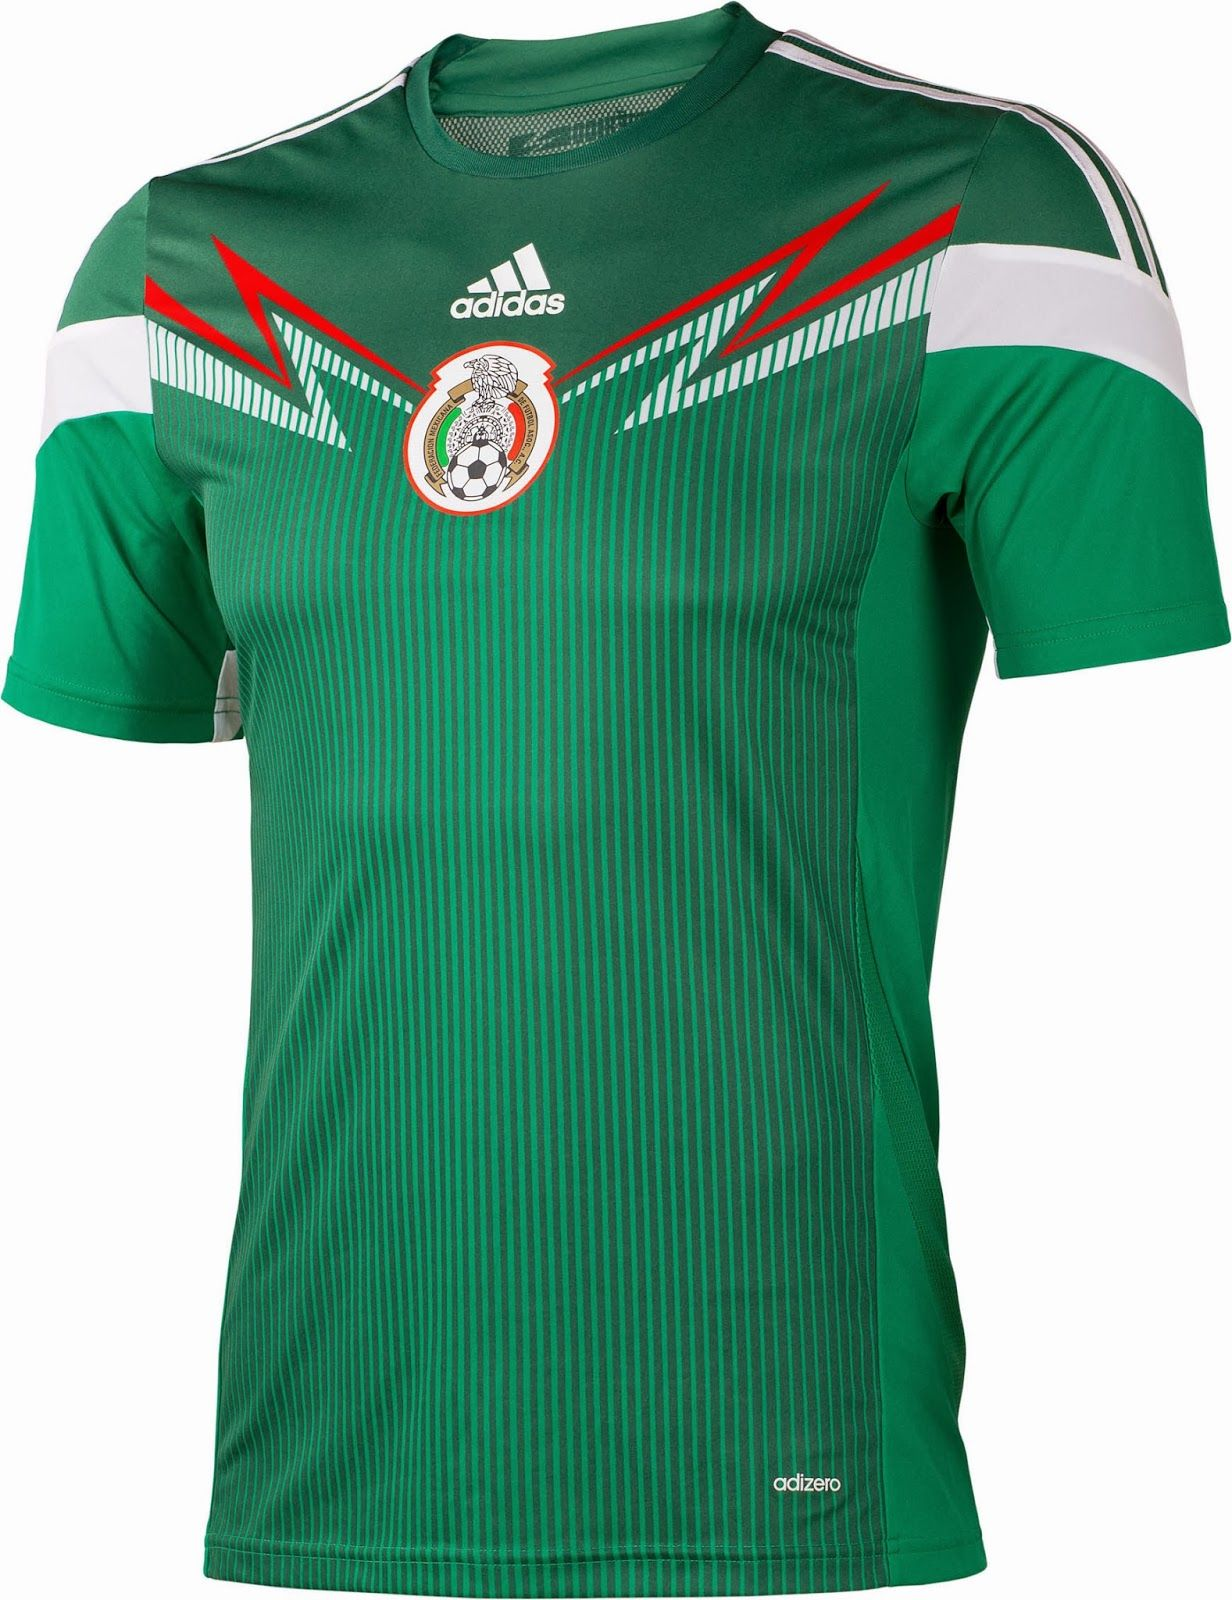 5c648d11525 Mexico 2014 World Cup Kits released. The new Mexico 2014 World Cup Kits are  made by adidas. Mexico 2014 World Cup Home Kit is green   white